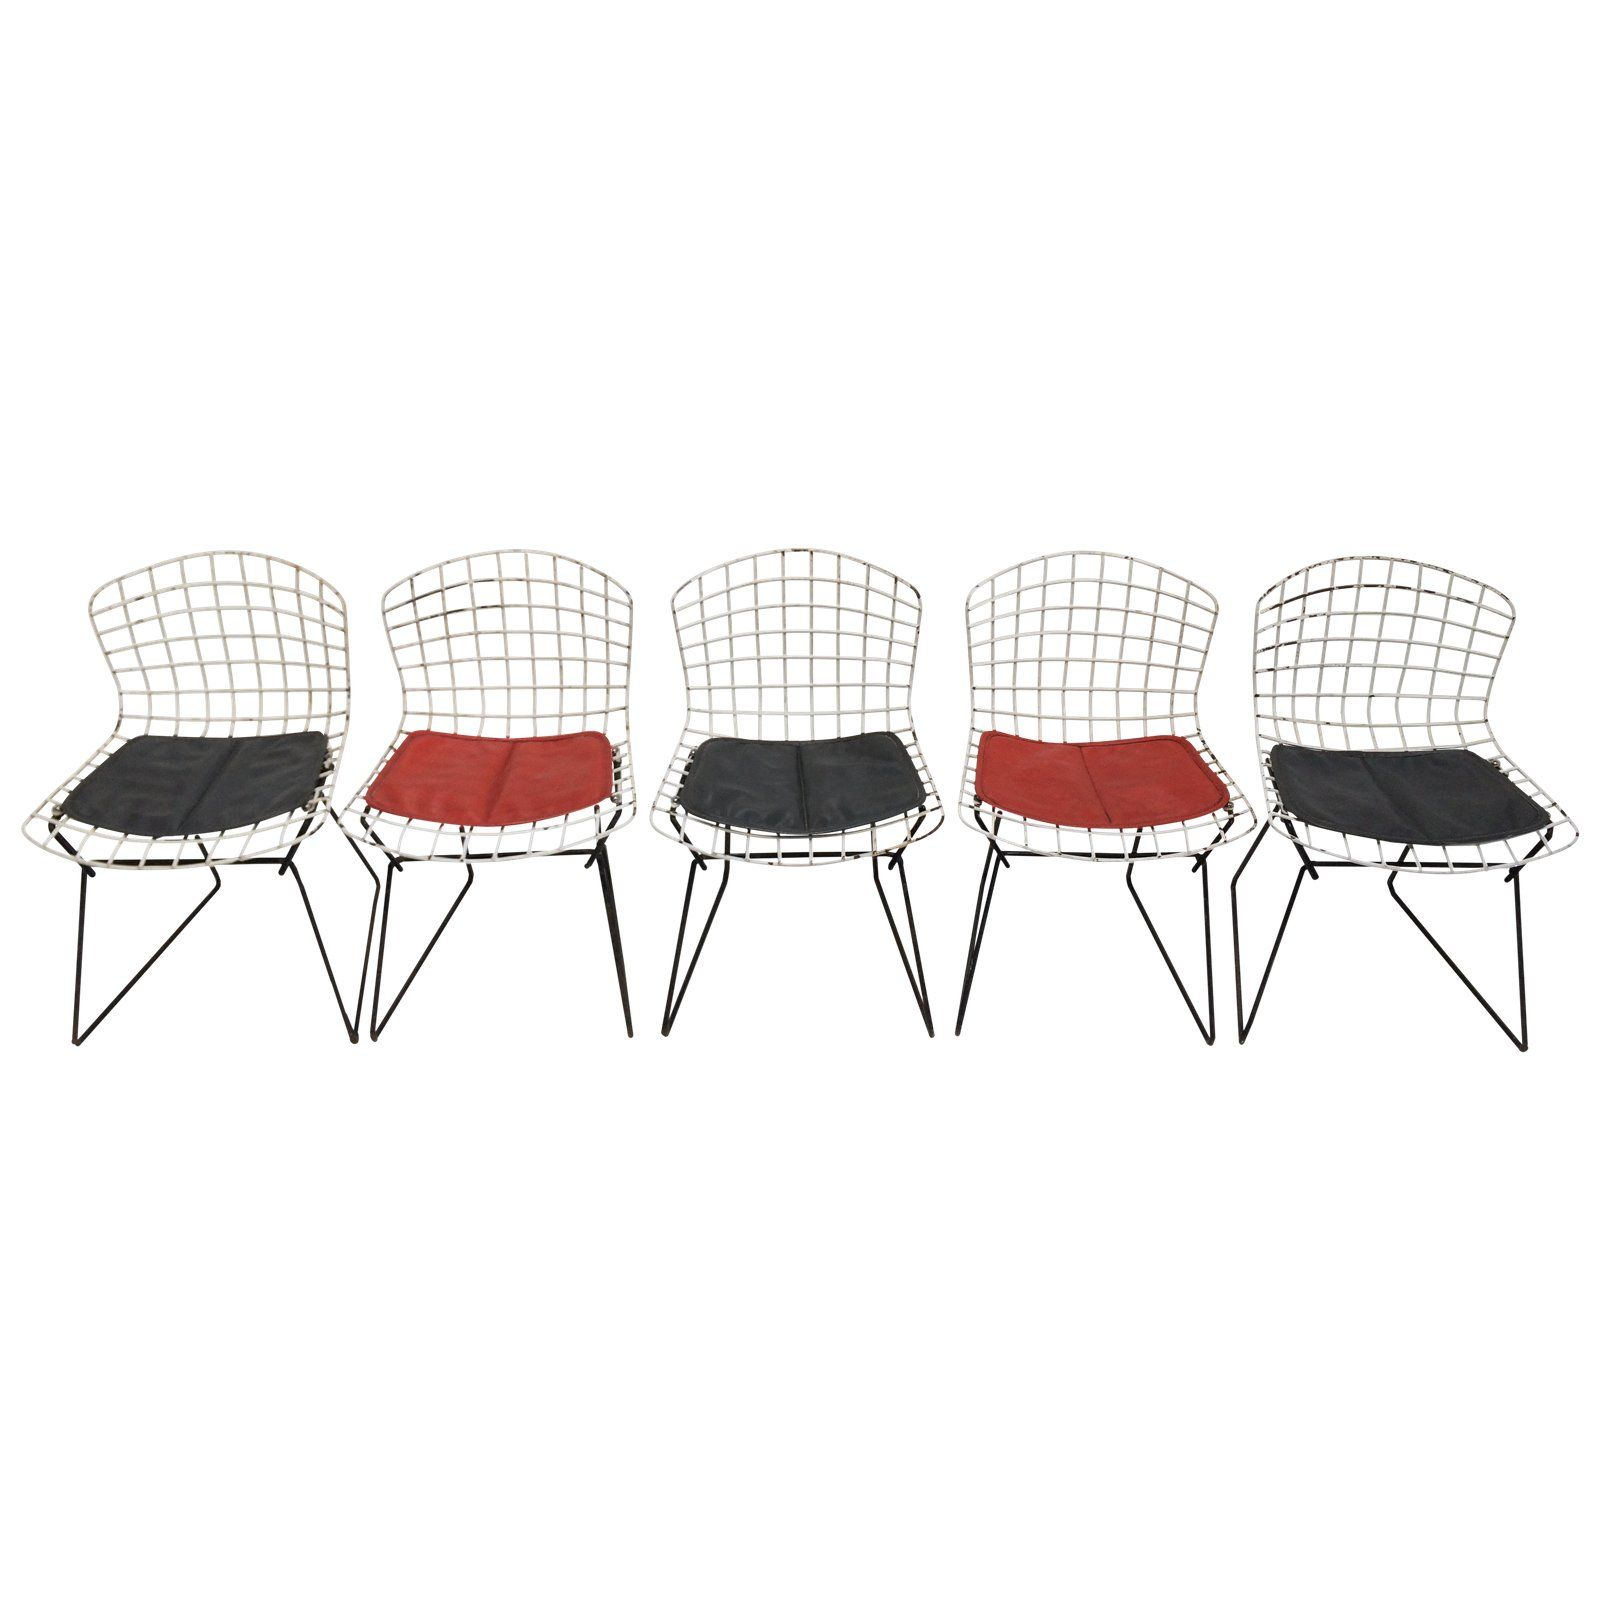 Knoll Bertoia Child Size Chairs Set of 5 BABY CHILD